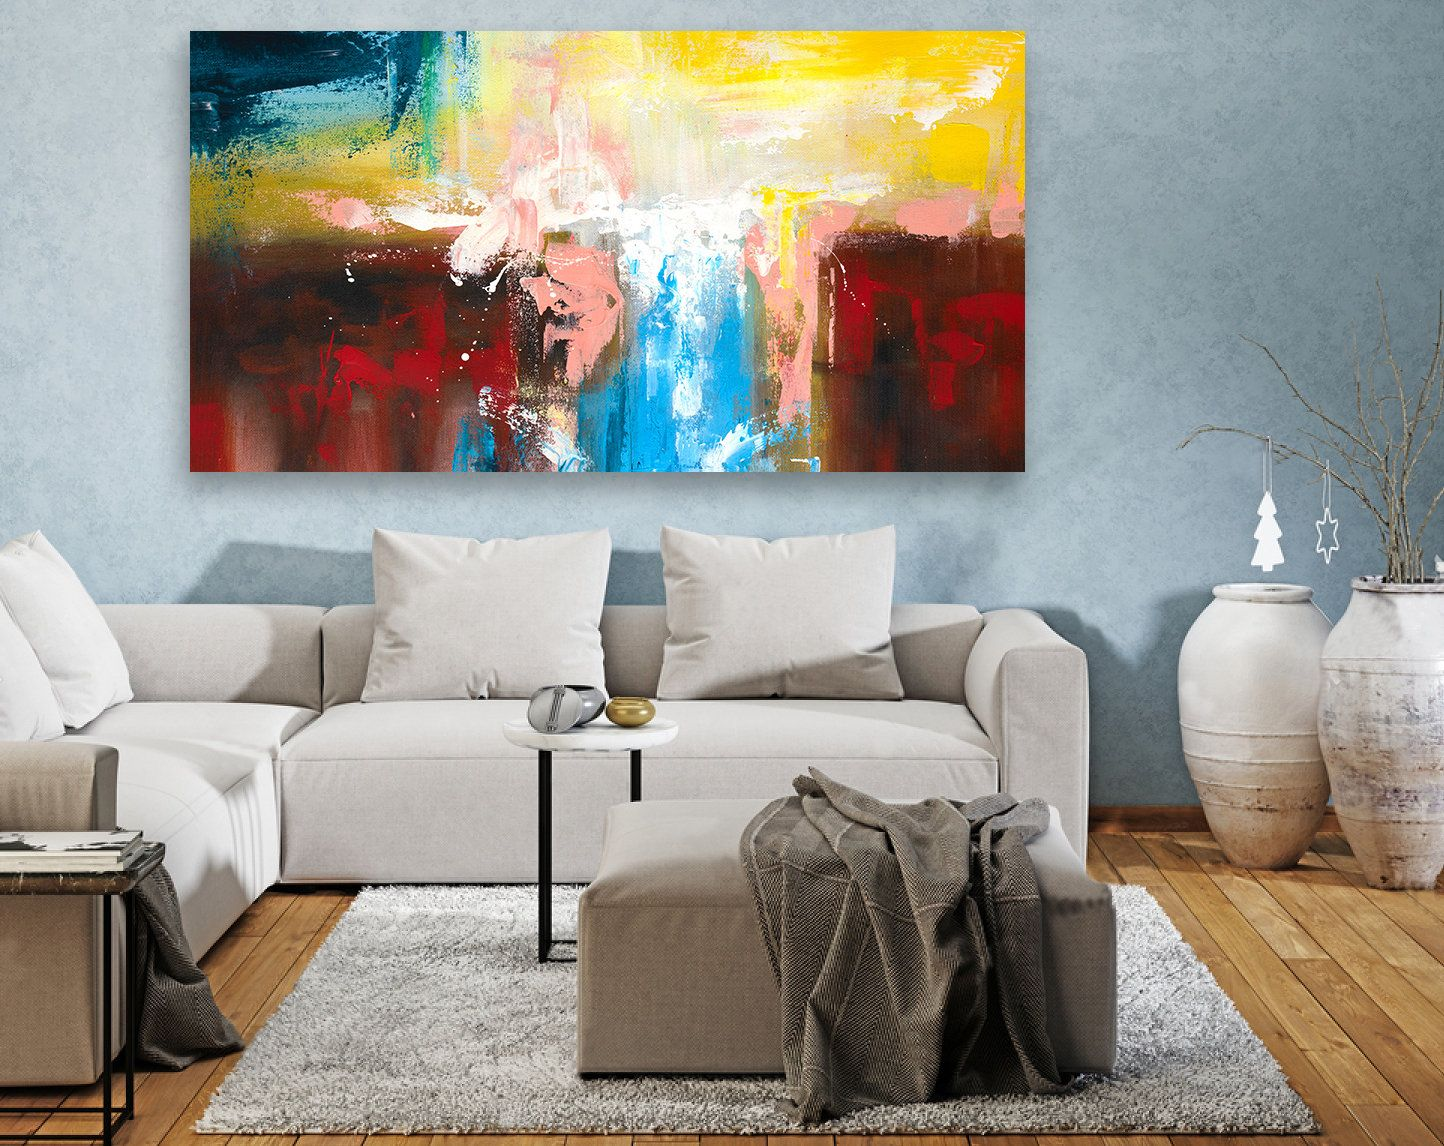 Astonishing Contemporary Wall Art Abstract Painting On Canvas Interior Design Ideas Clesiryabchikinfo